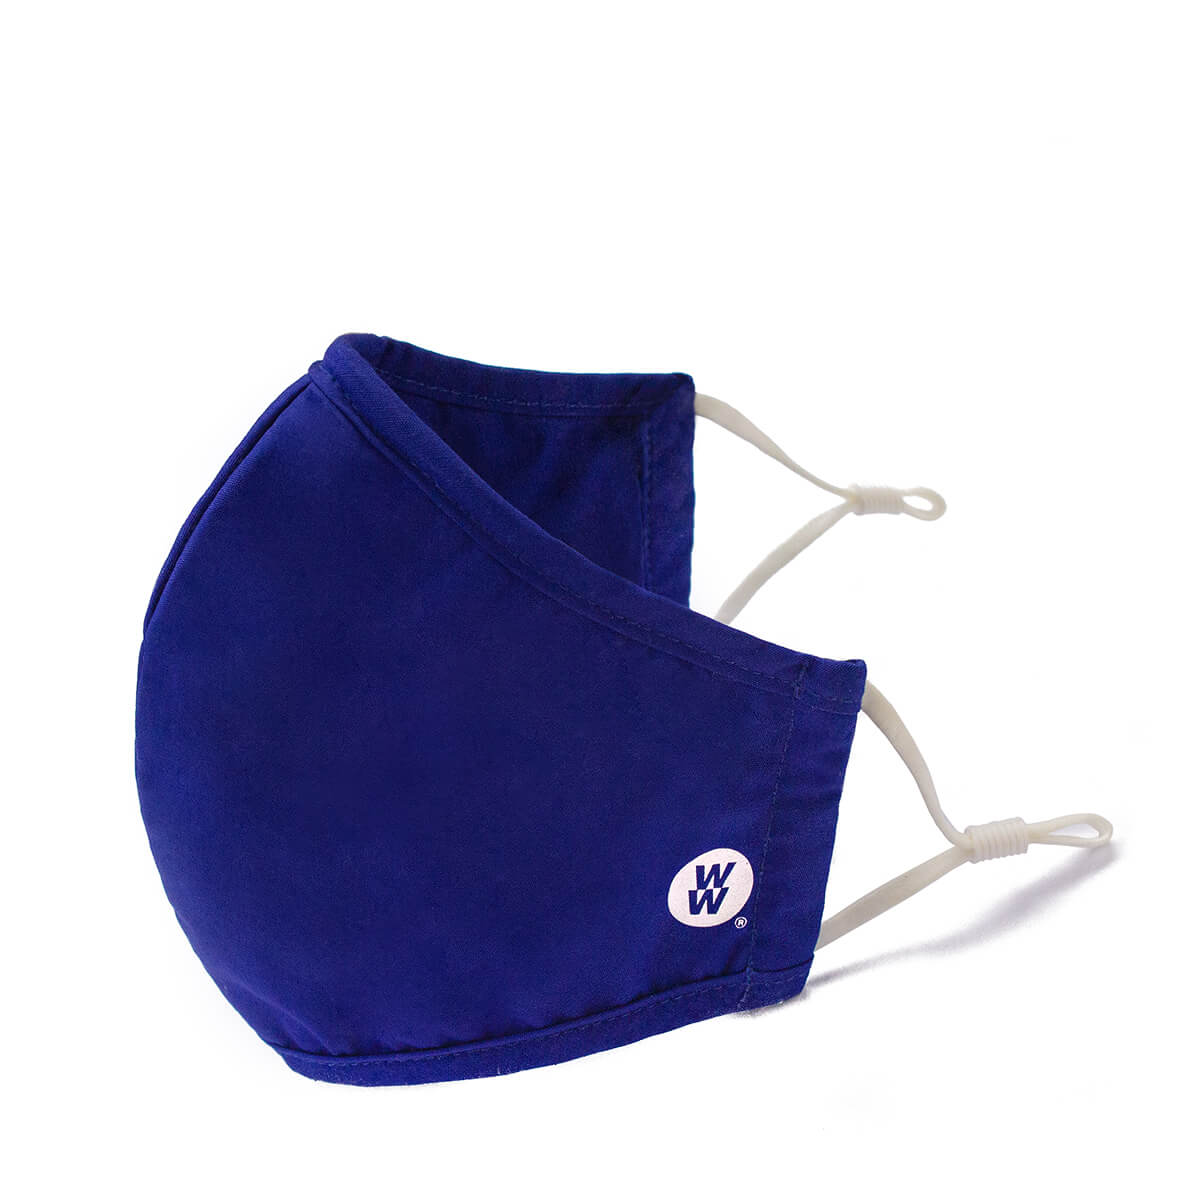 WW Reusable Cloth Mask, navy blue face mask with adjustable straps, WW coin logo on cheek